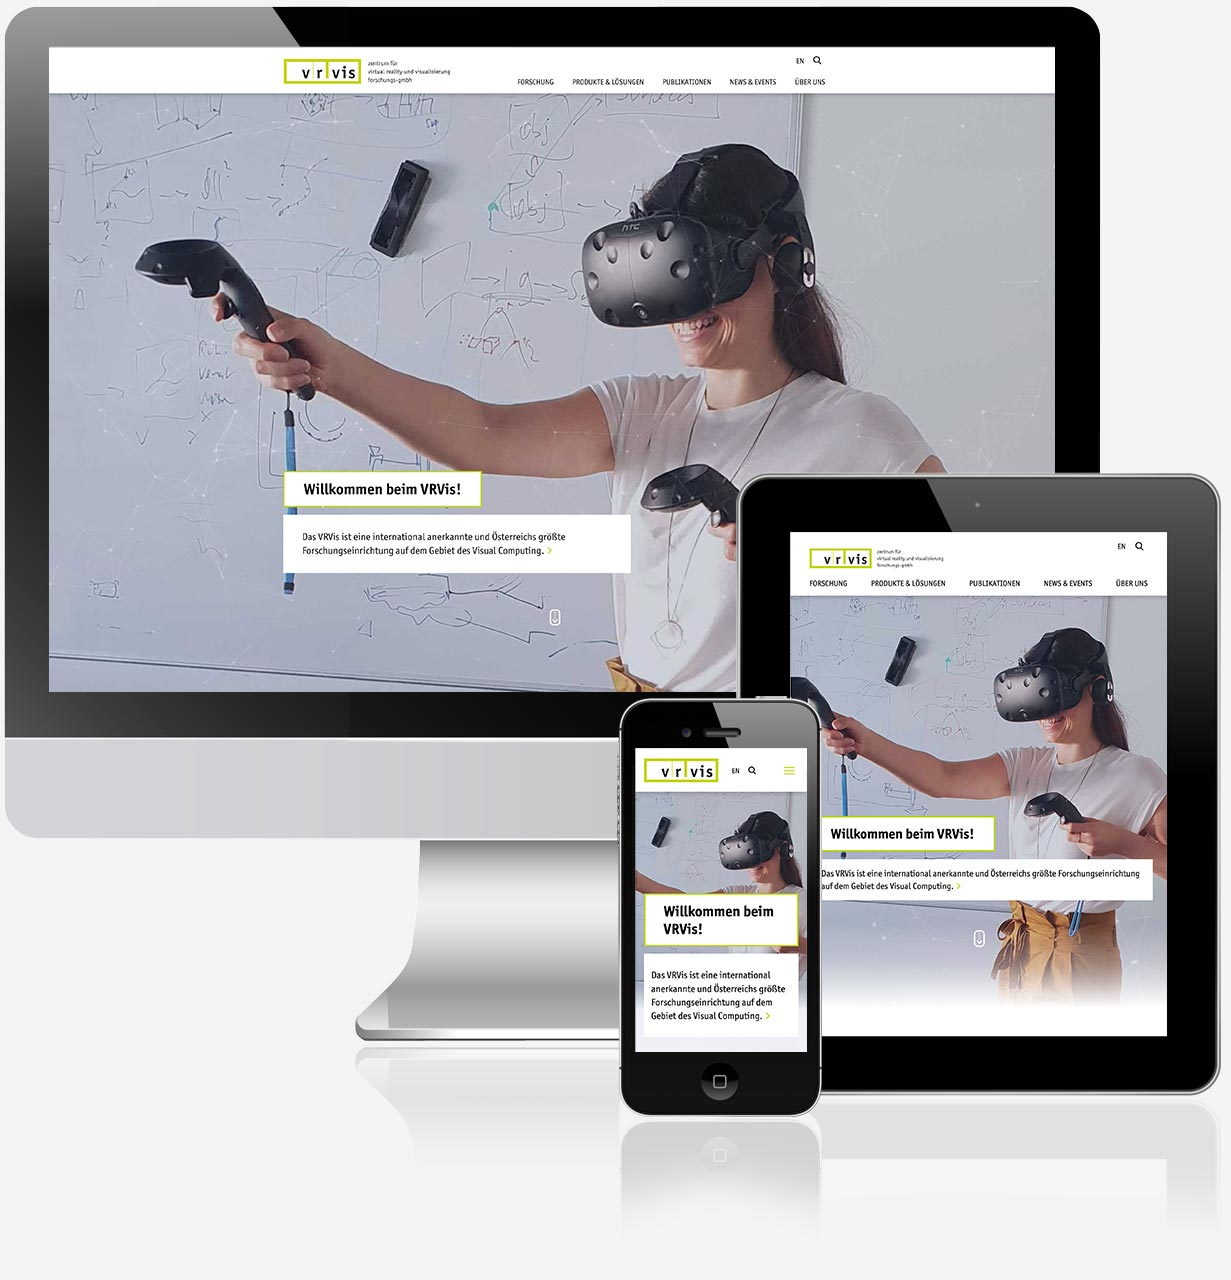 VRVis Zentrum für Virtual Reality und Visualisierung Forschungs-GmbH Website C21 new media design Online Agentur Webagentur Digitalagentur Wien